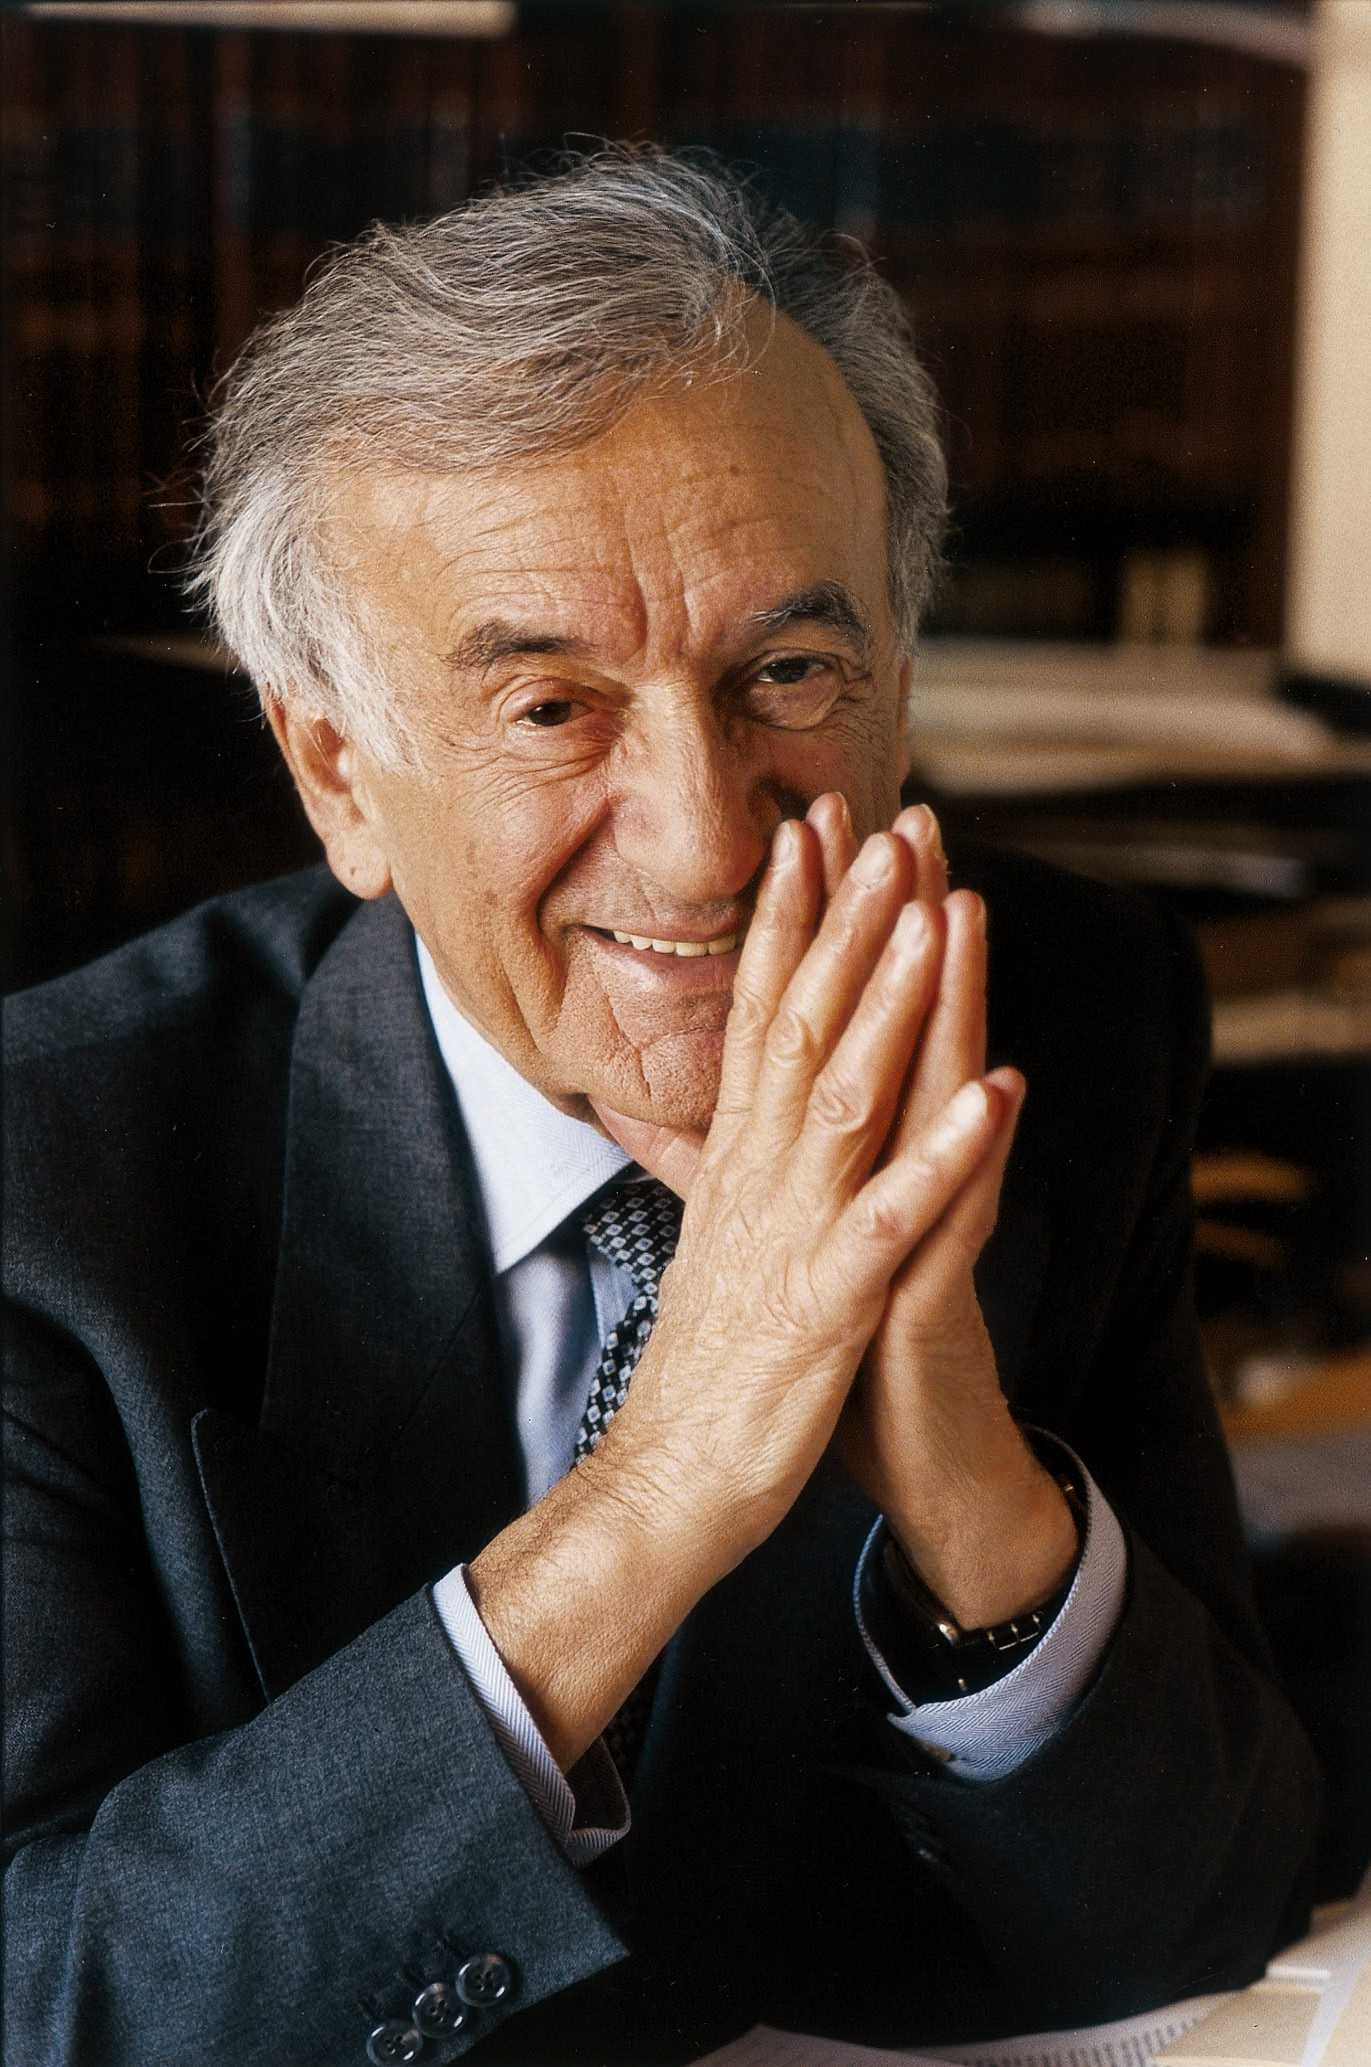 La profession de foi d'lie Wiesel